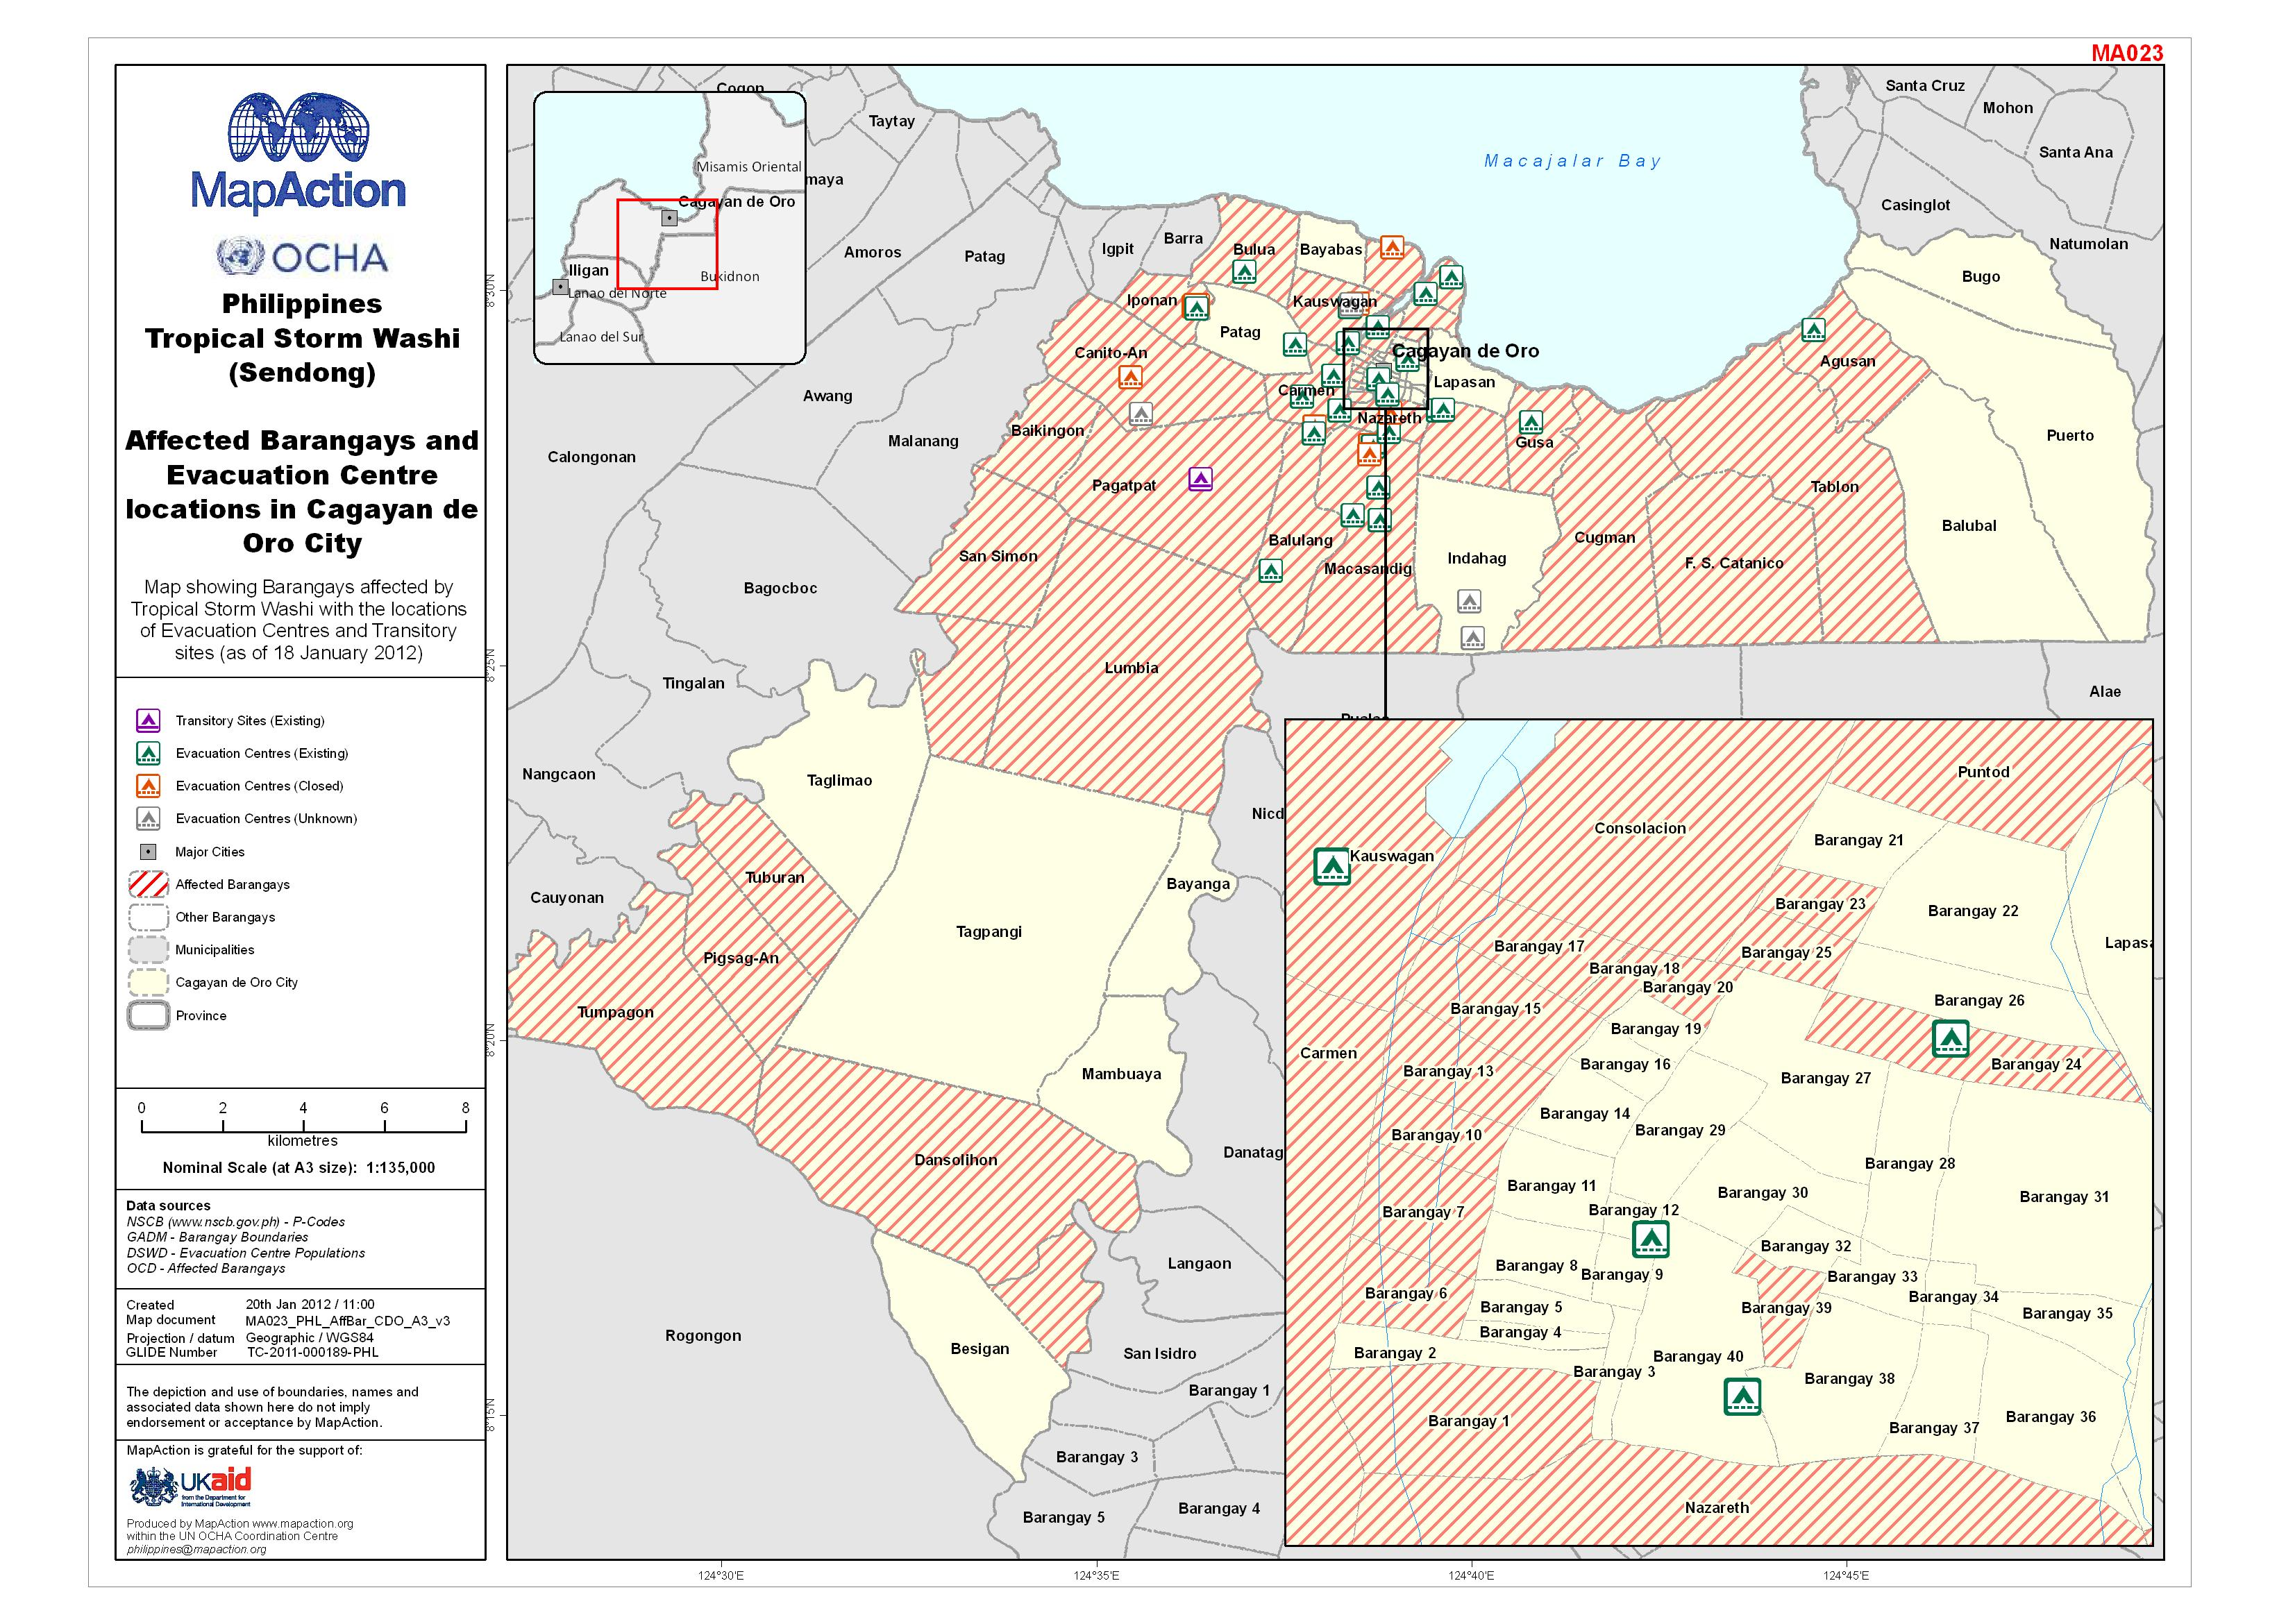 Cagayan Philippines Map.Philippines Tropical Storm Washi Sendong Affected Barangays And